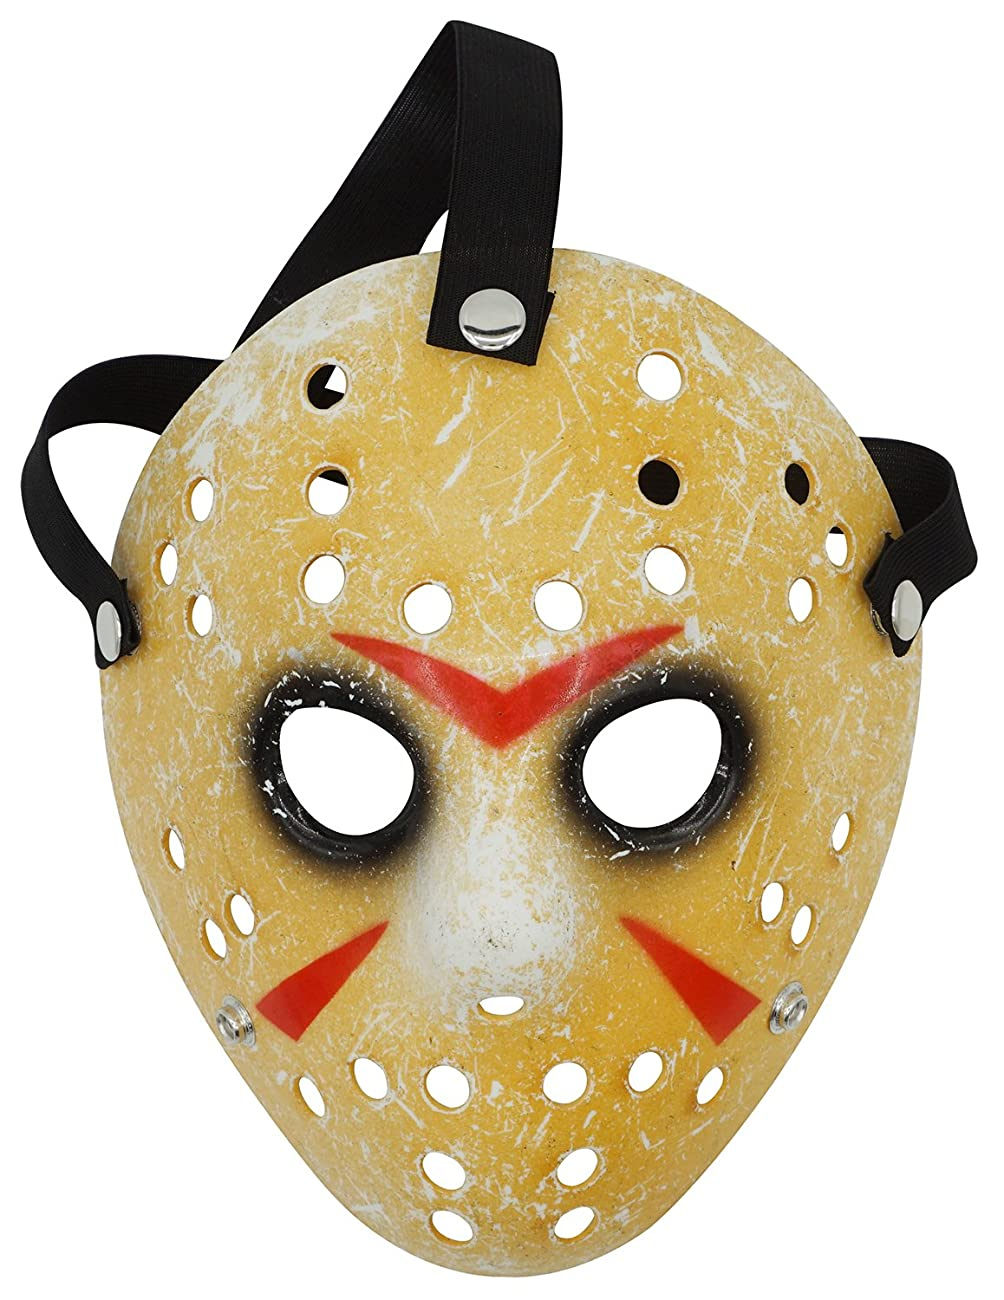 Cosplay costume Mask Halloween Party Cool Mask 0